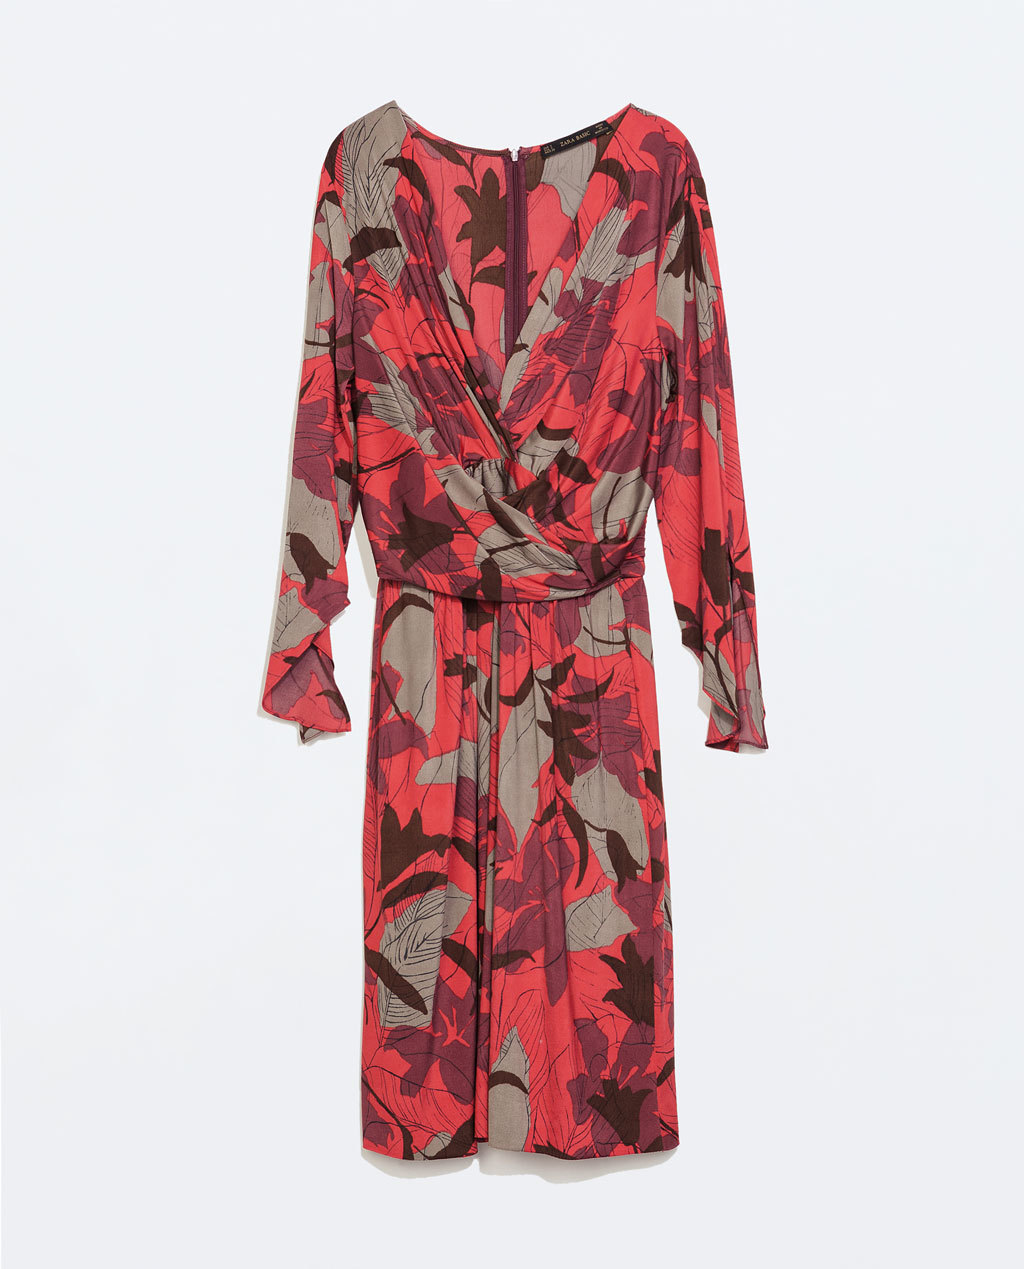 Floral Wrap Dress - style: faux wrap/wrap; neckline: low v-neck; sleeve style: dolman/batwing; bust detail: subtle bust detail; predominant colour: bright orange; occasions: casual, occasion, creative work; length: on the knee; fit: body skimming; fibres: polyester/polyamide - stretch; sleeve length: long sleeve; pattern type: fabric; pattern size: big & busy; pattern: florals; texture group: jersey - stretchy/drapey; season: a/w 2014; wardrobe: highlight